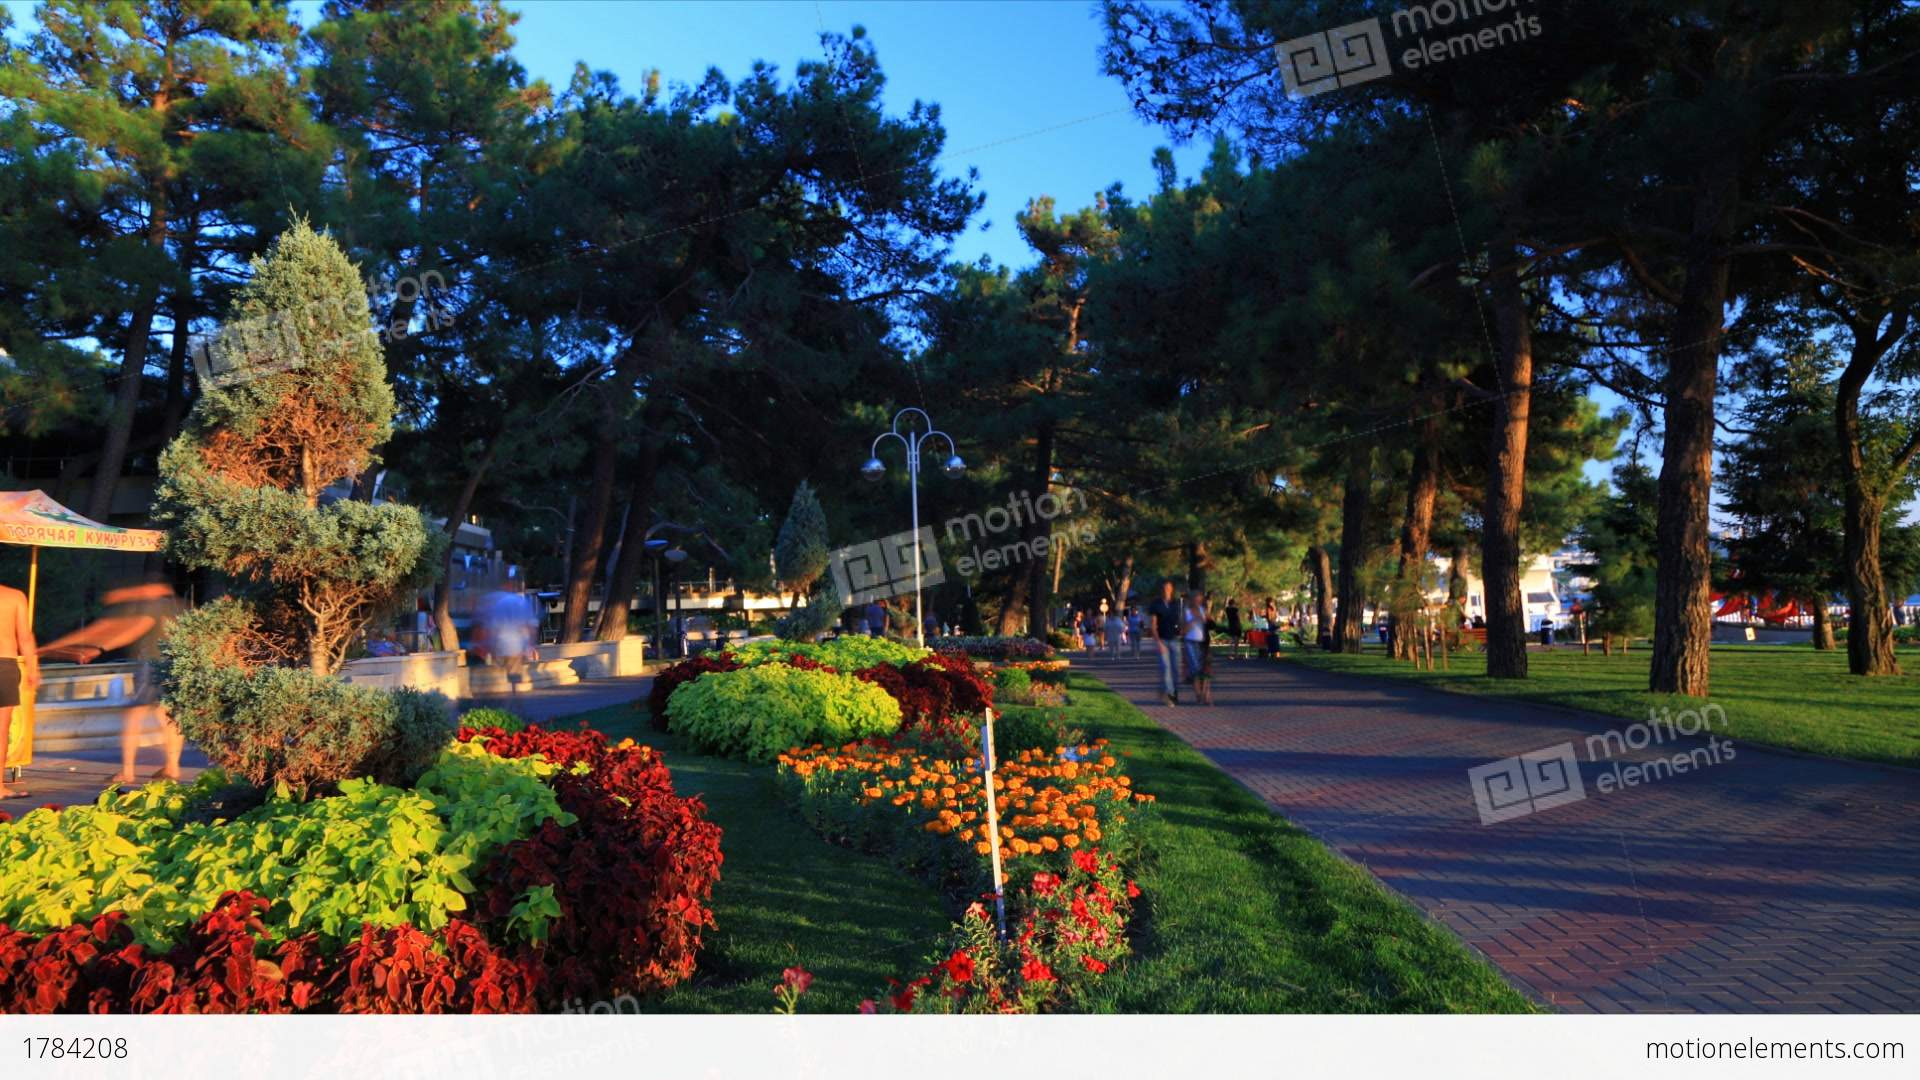 Gelendzhik Russia  City pictures : Gelendzhik City Sunset Timelapse, Russia Stock Video Footage | Royalty ...